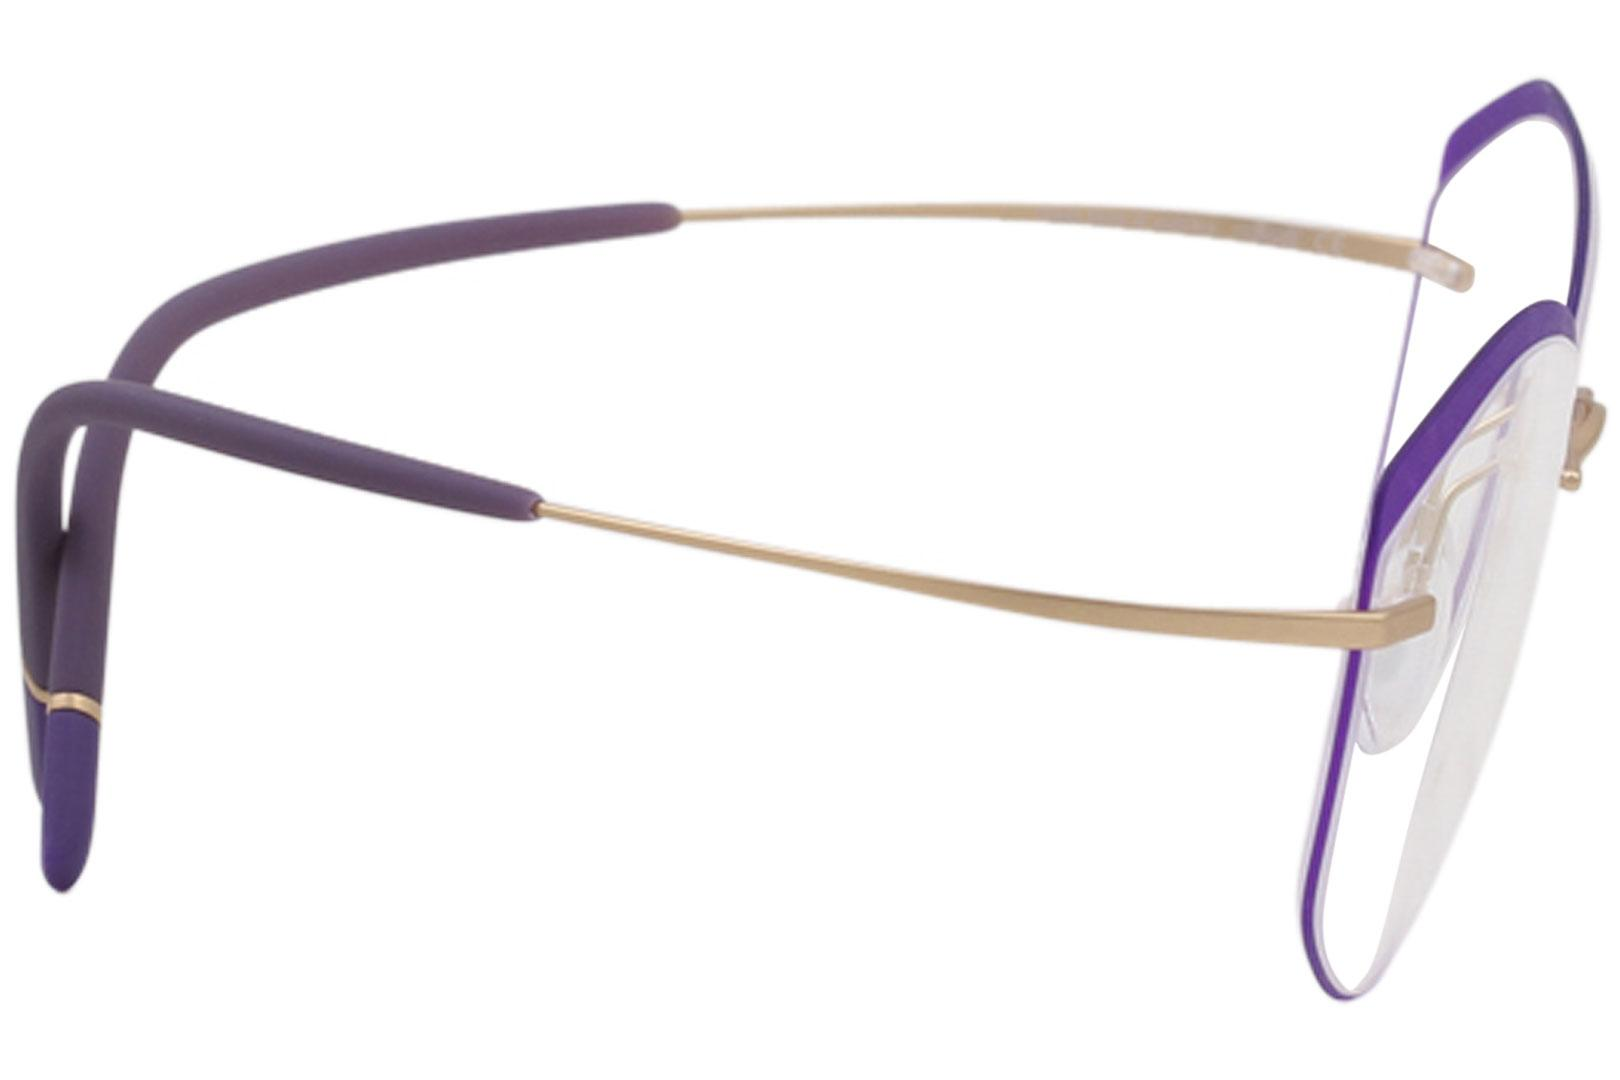 dd2c0723493 Silhouette Eyeglasses Titan Minimal Art The Icon Accent Rings 5518 Optical  Frame by Silhouette